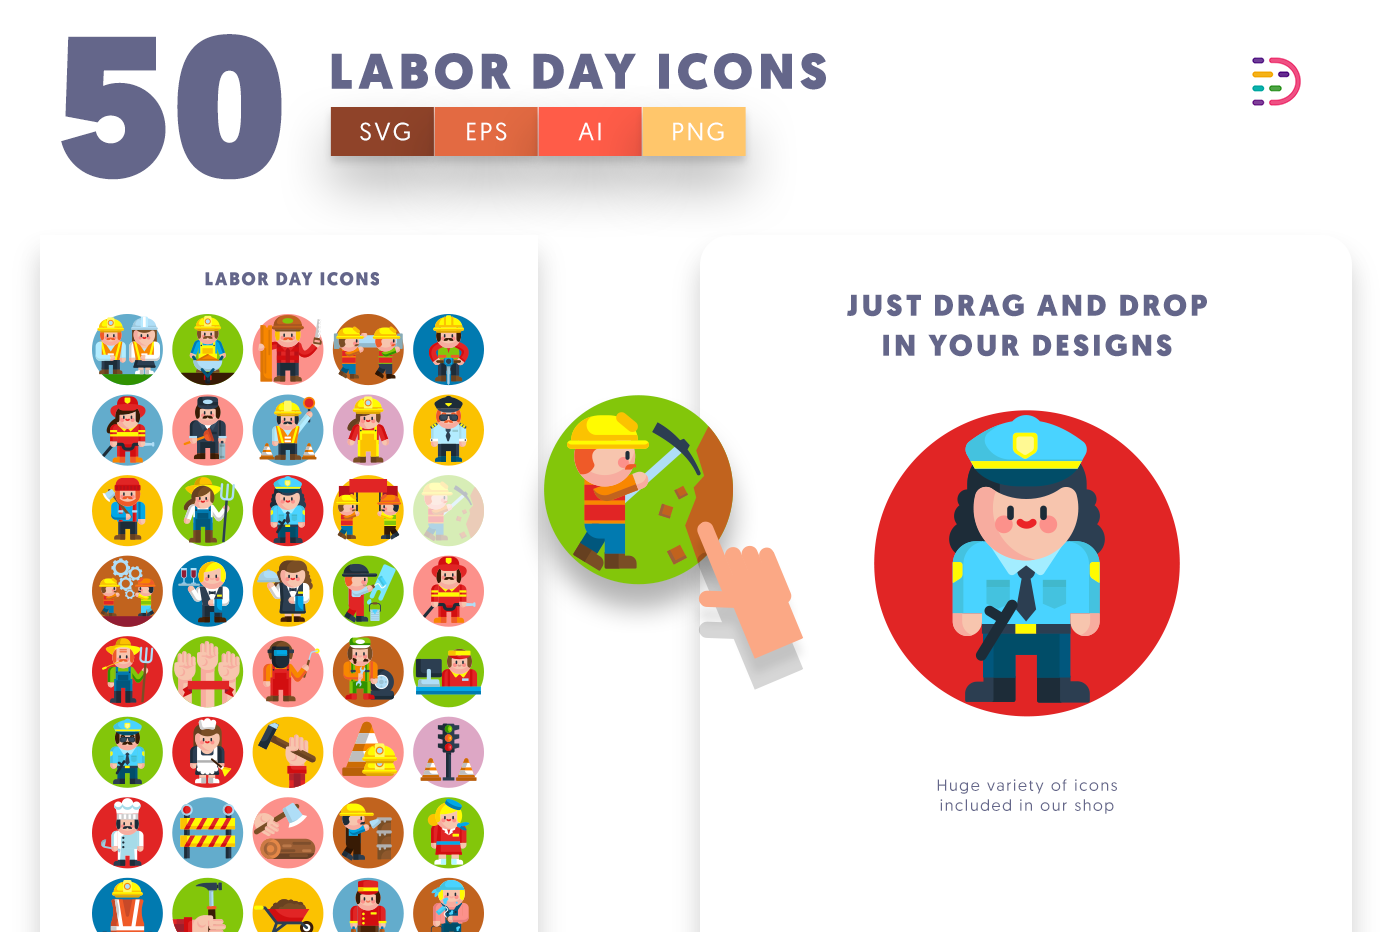 Design ready 50 Labor Day Icons